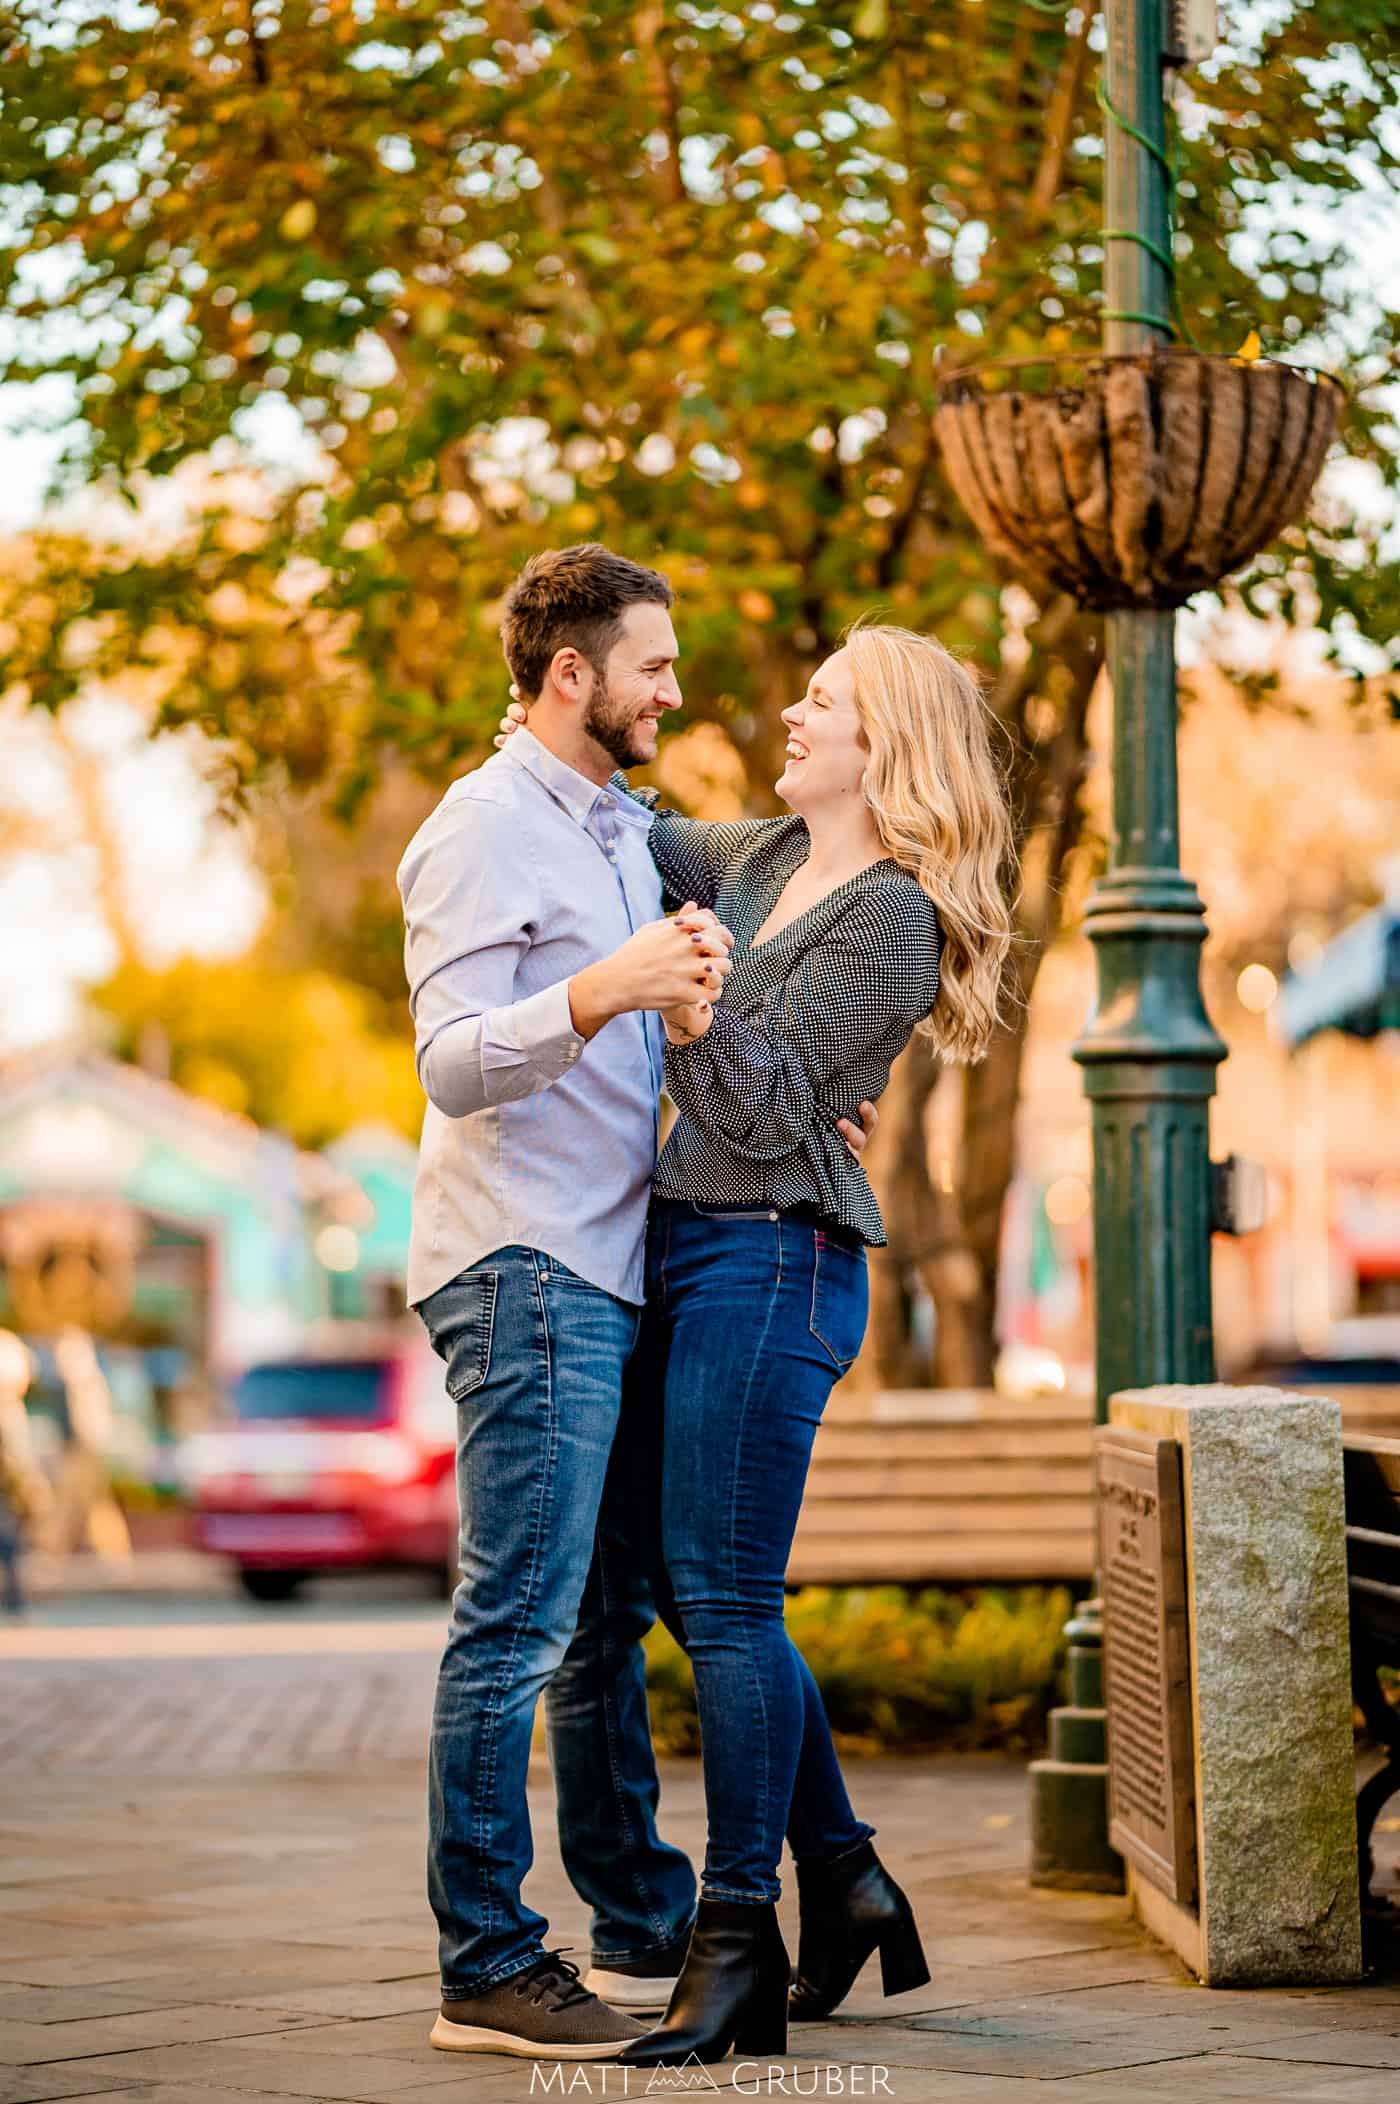 Engagement Photos at Washington Street Mall in Cape May, New Jersey